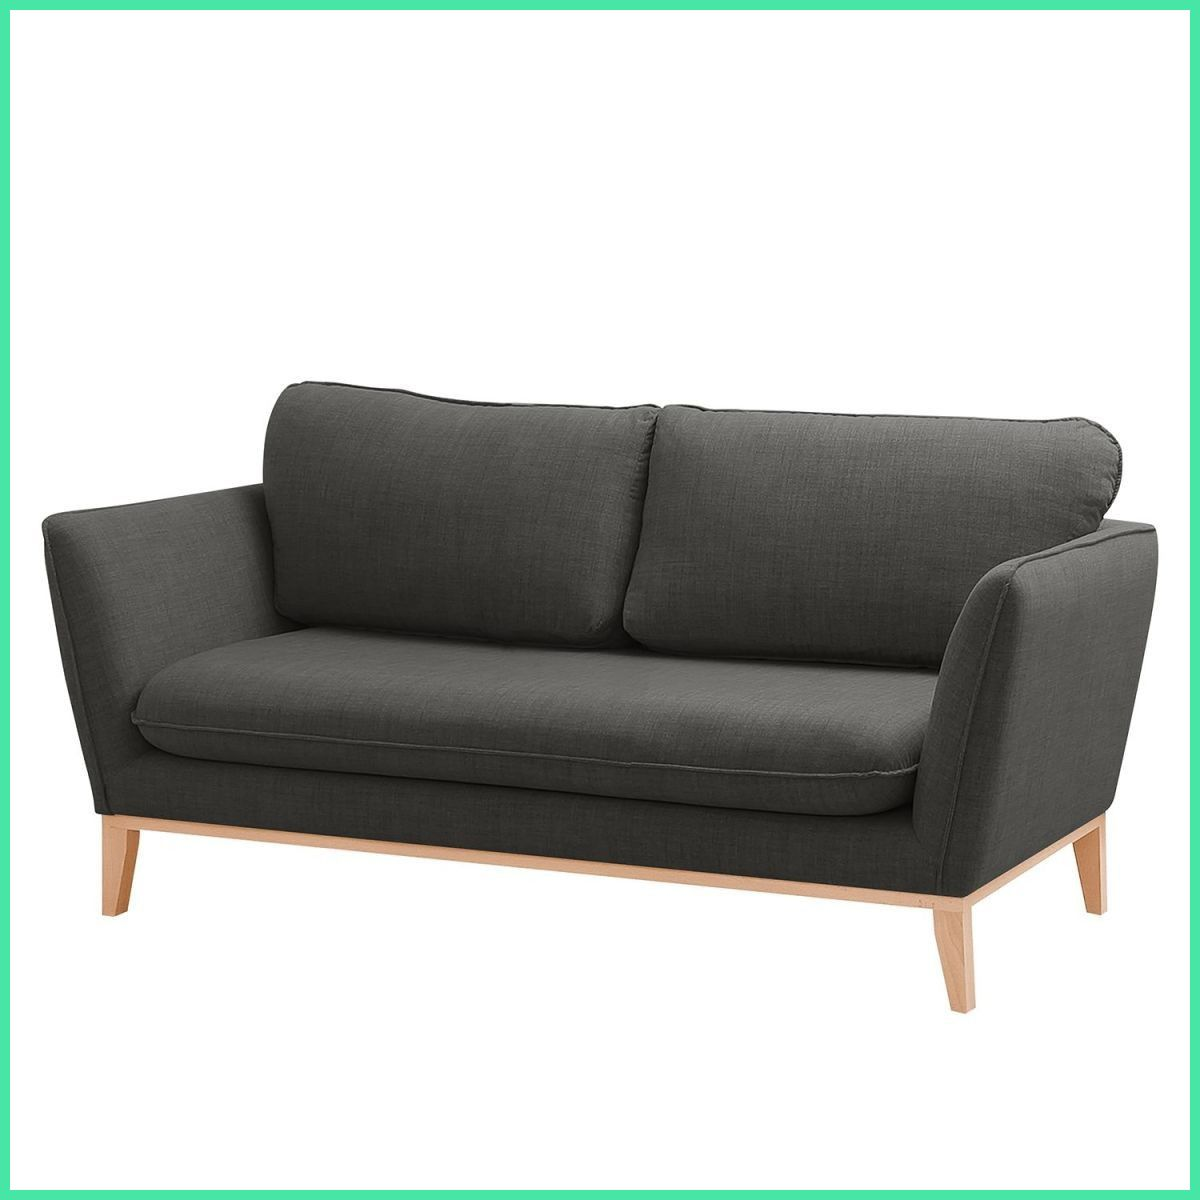 Komplett Neckermann Sofa Check More At Stridentbeauties Neckermann